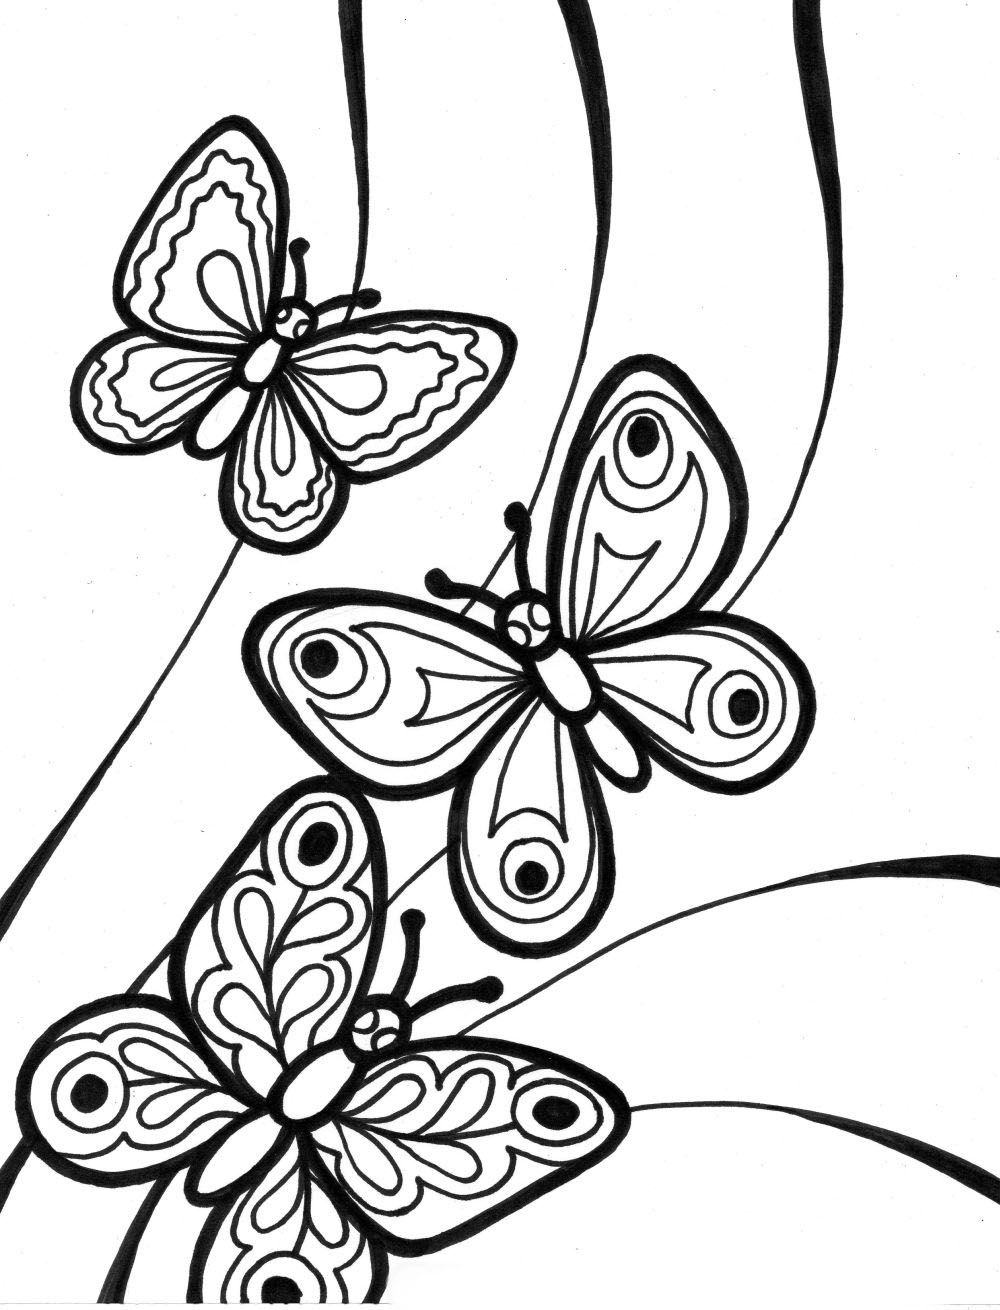 Coloring pages for donna flor - Adult Coloring